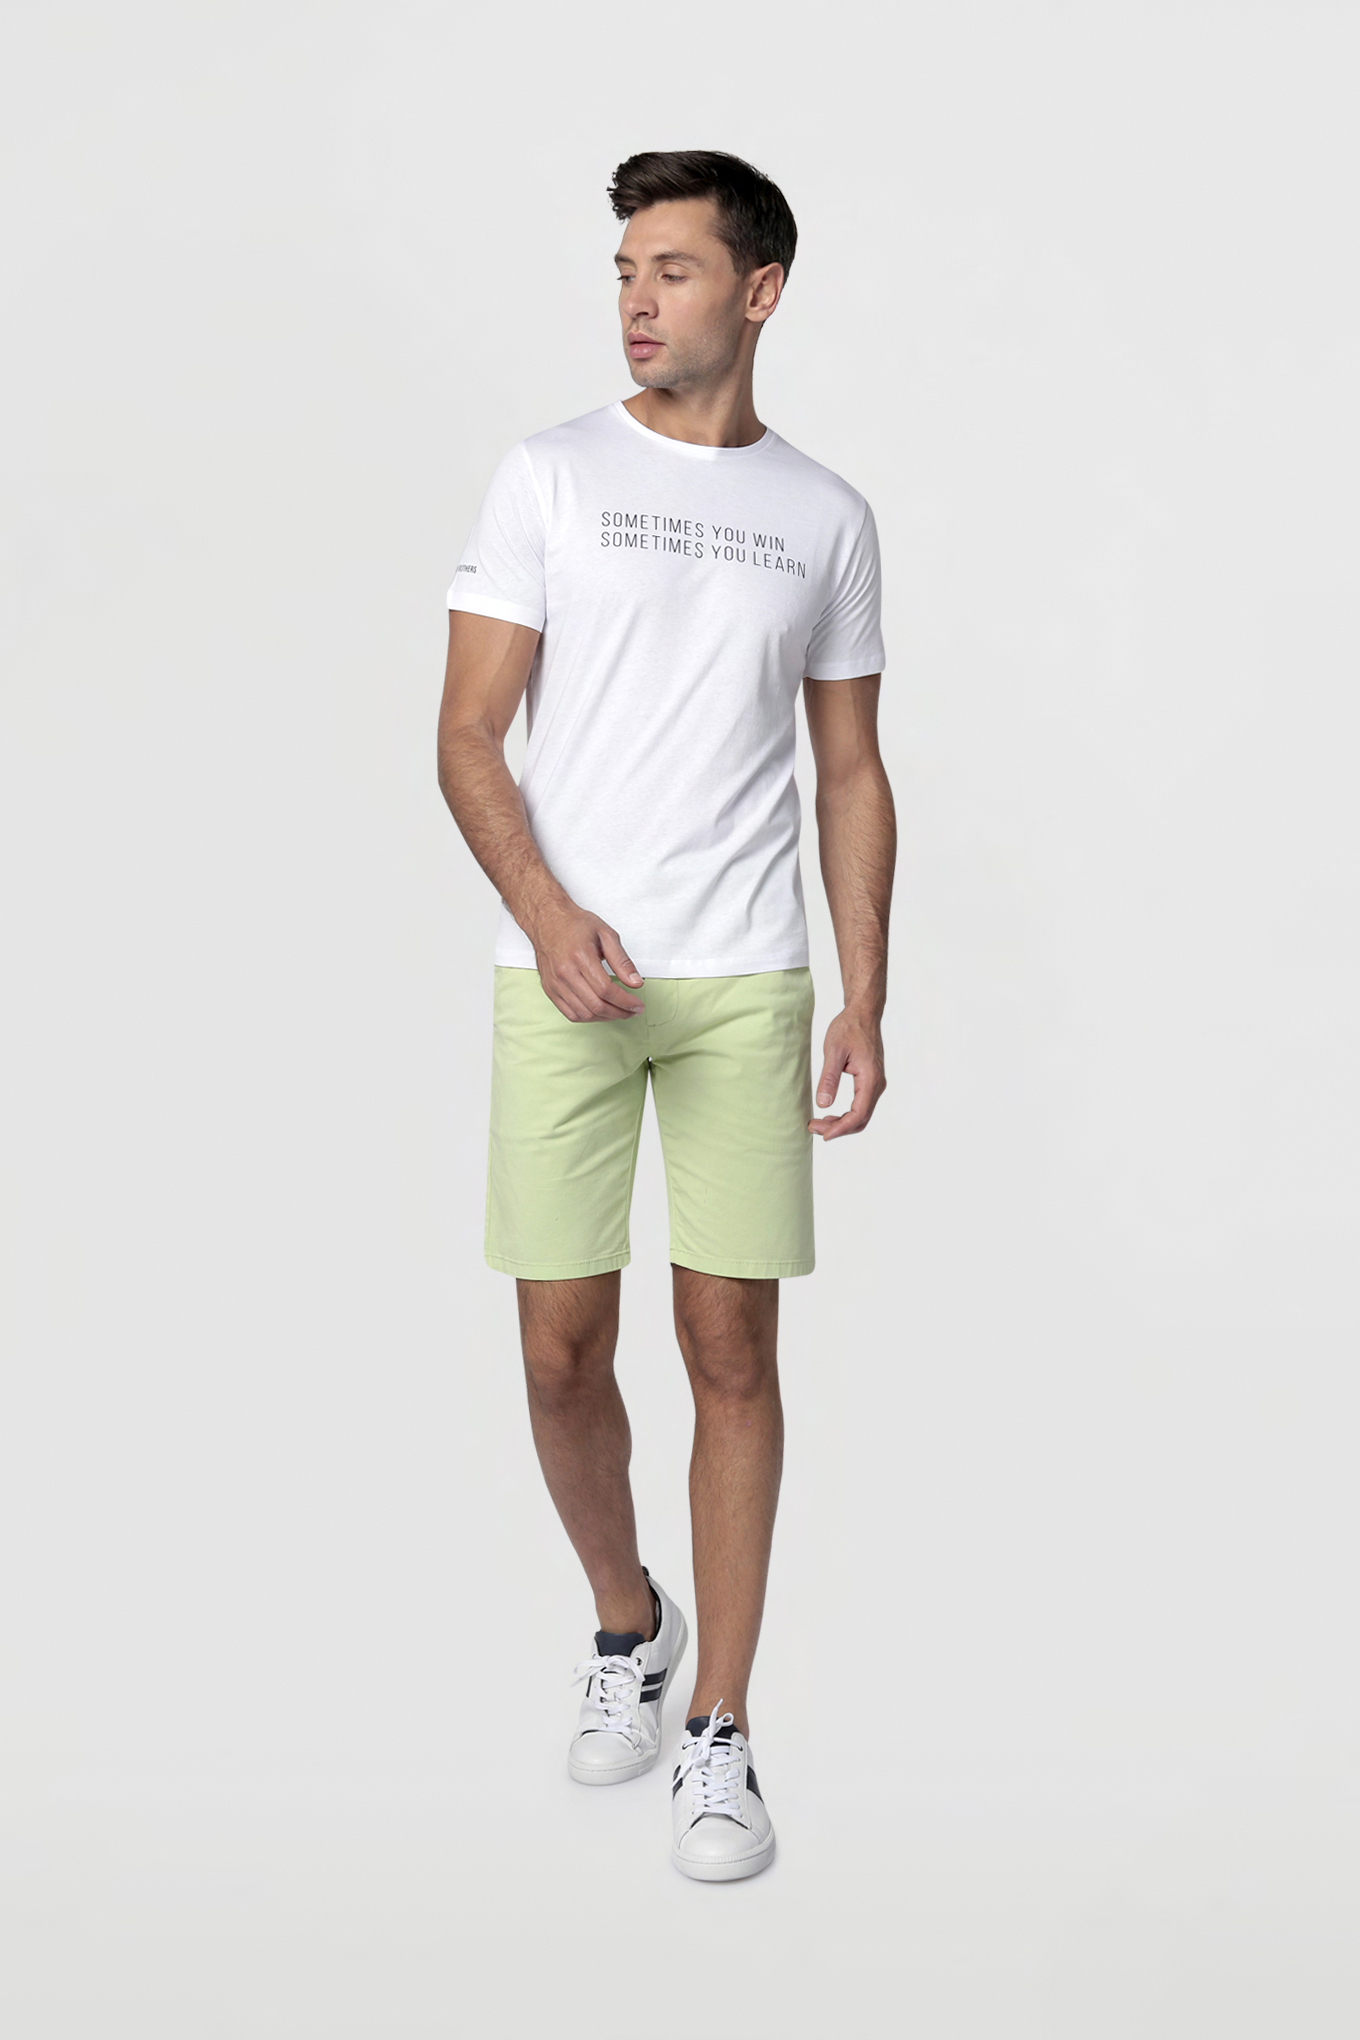 T-Shirt White Casual Man